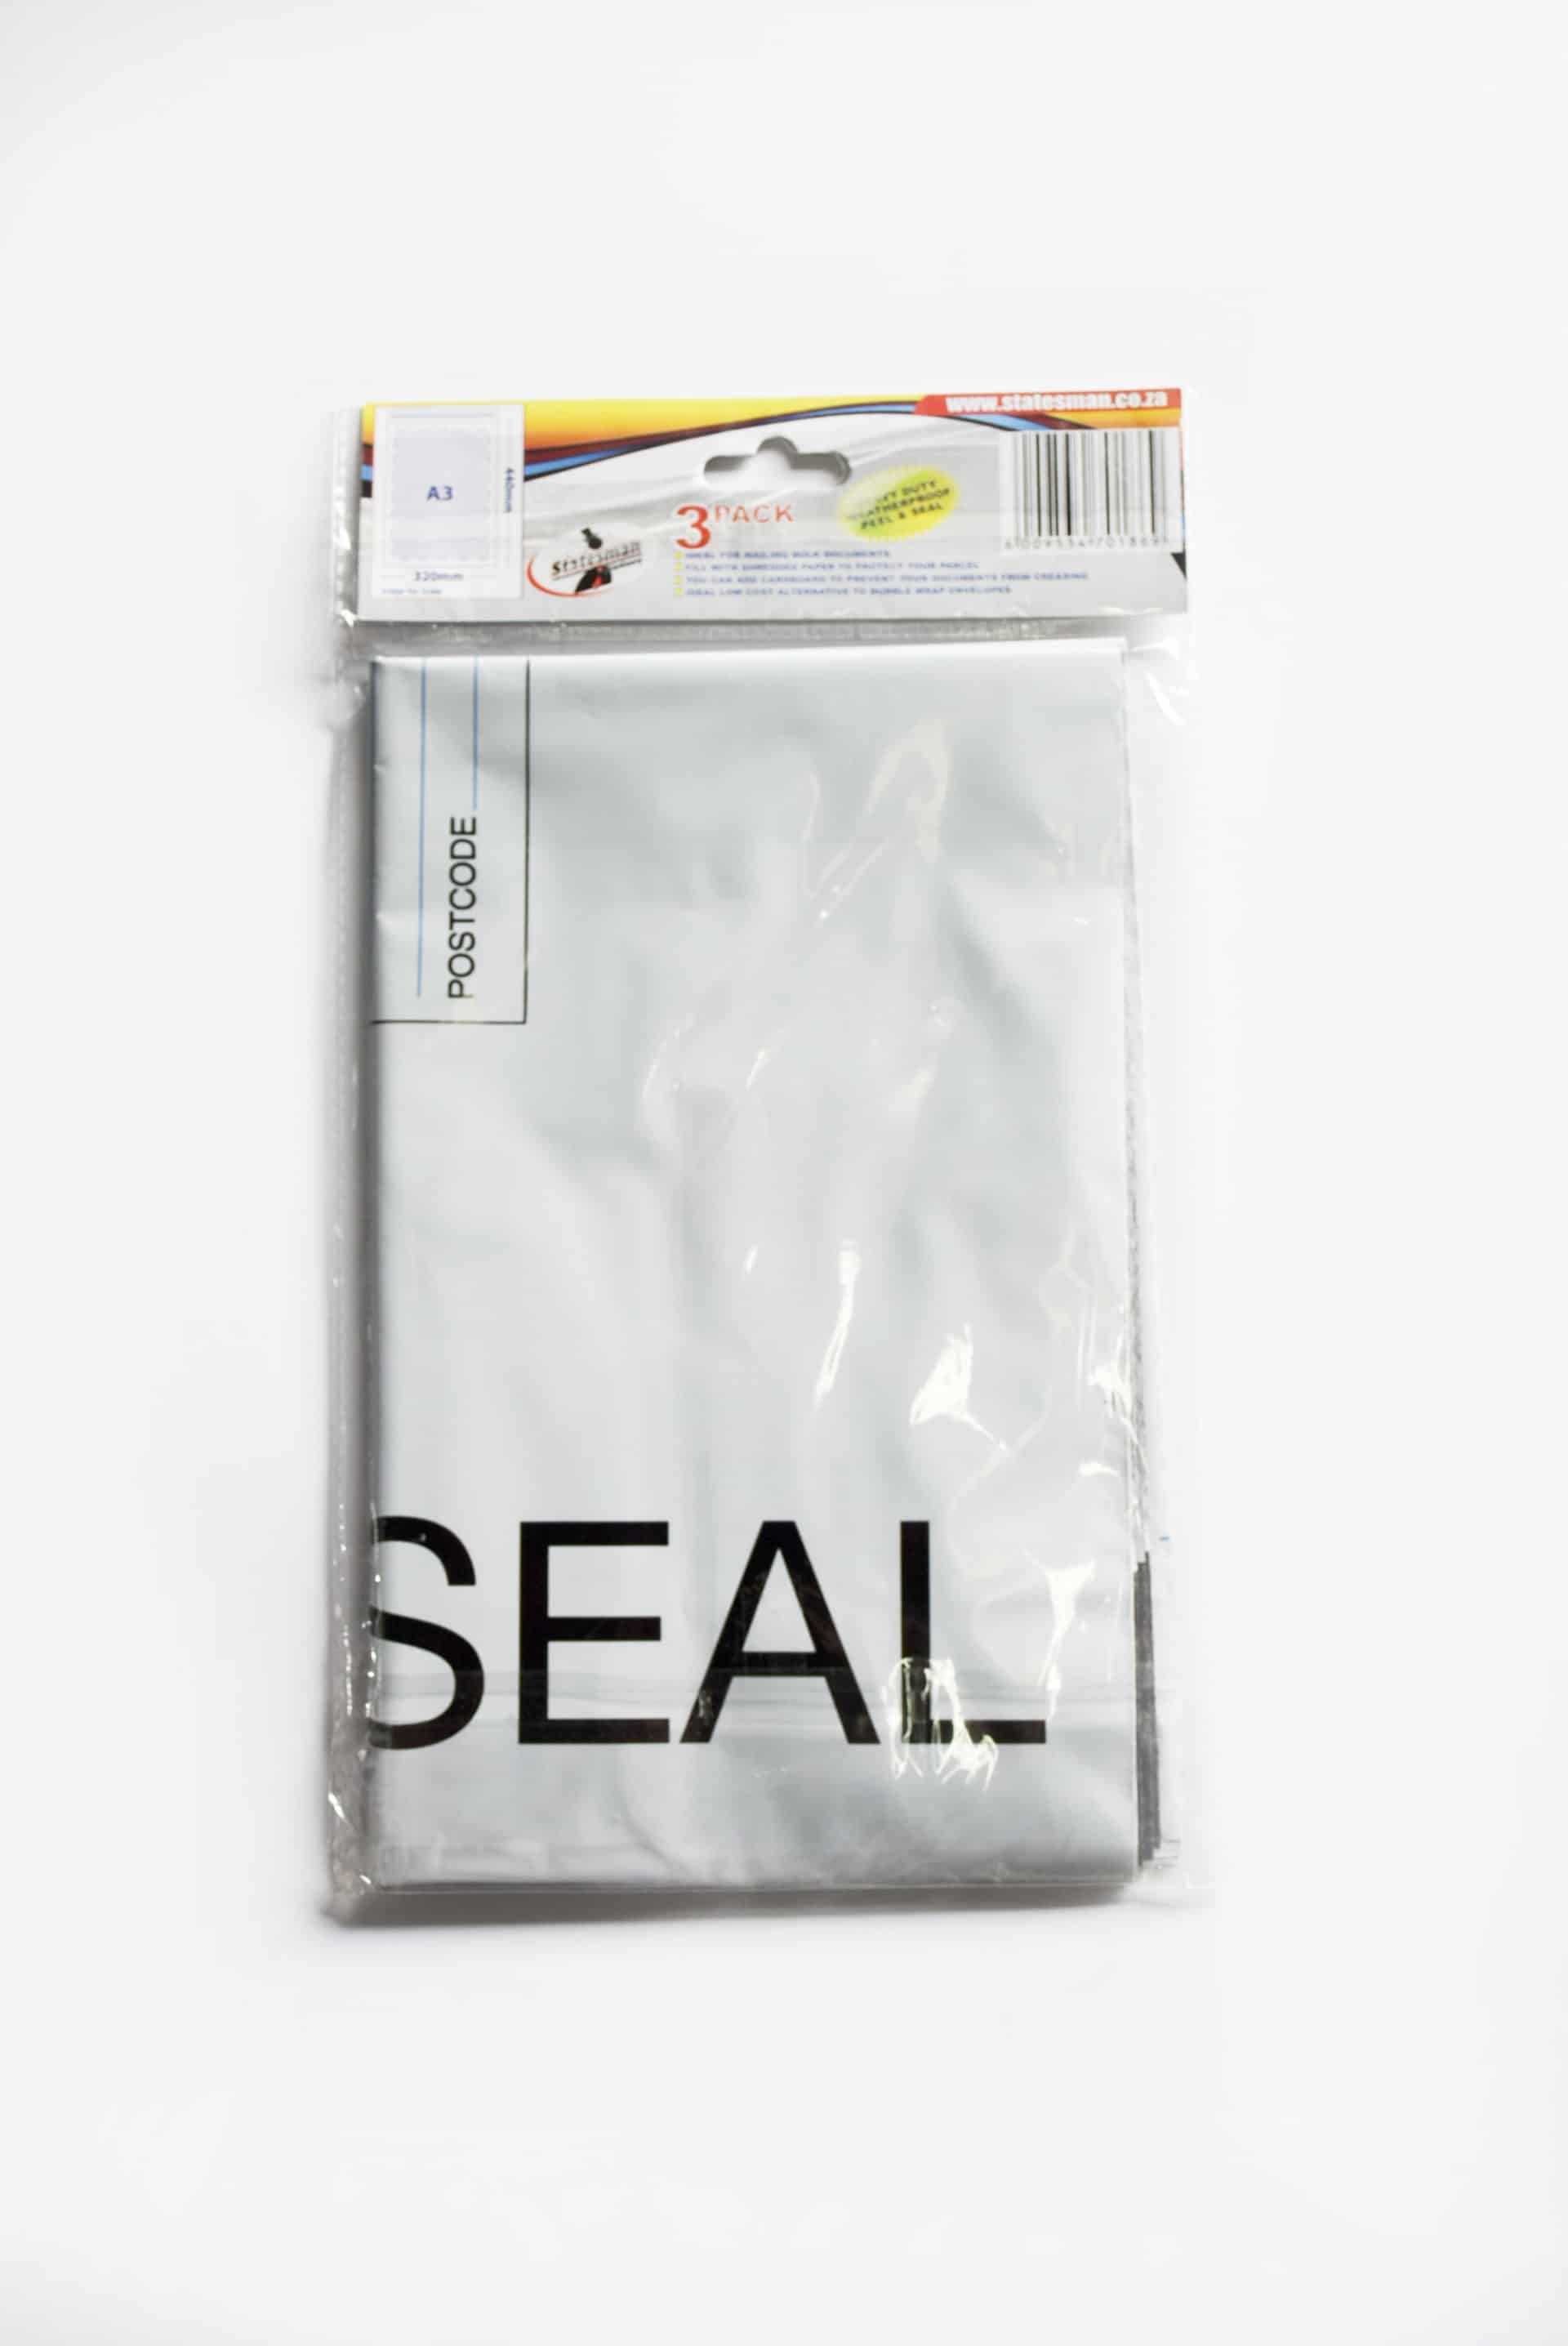 Mailer Bags Pack 3 A3 1